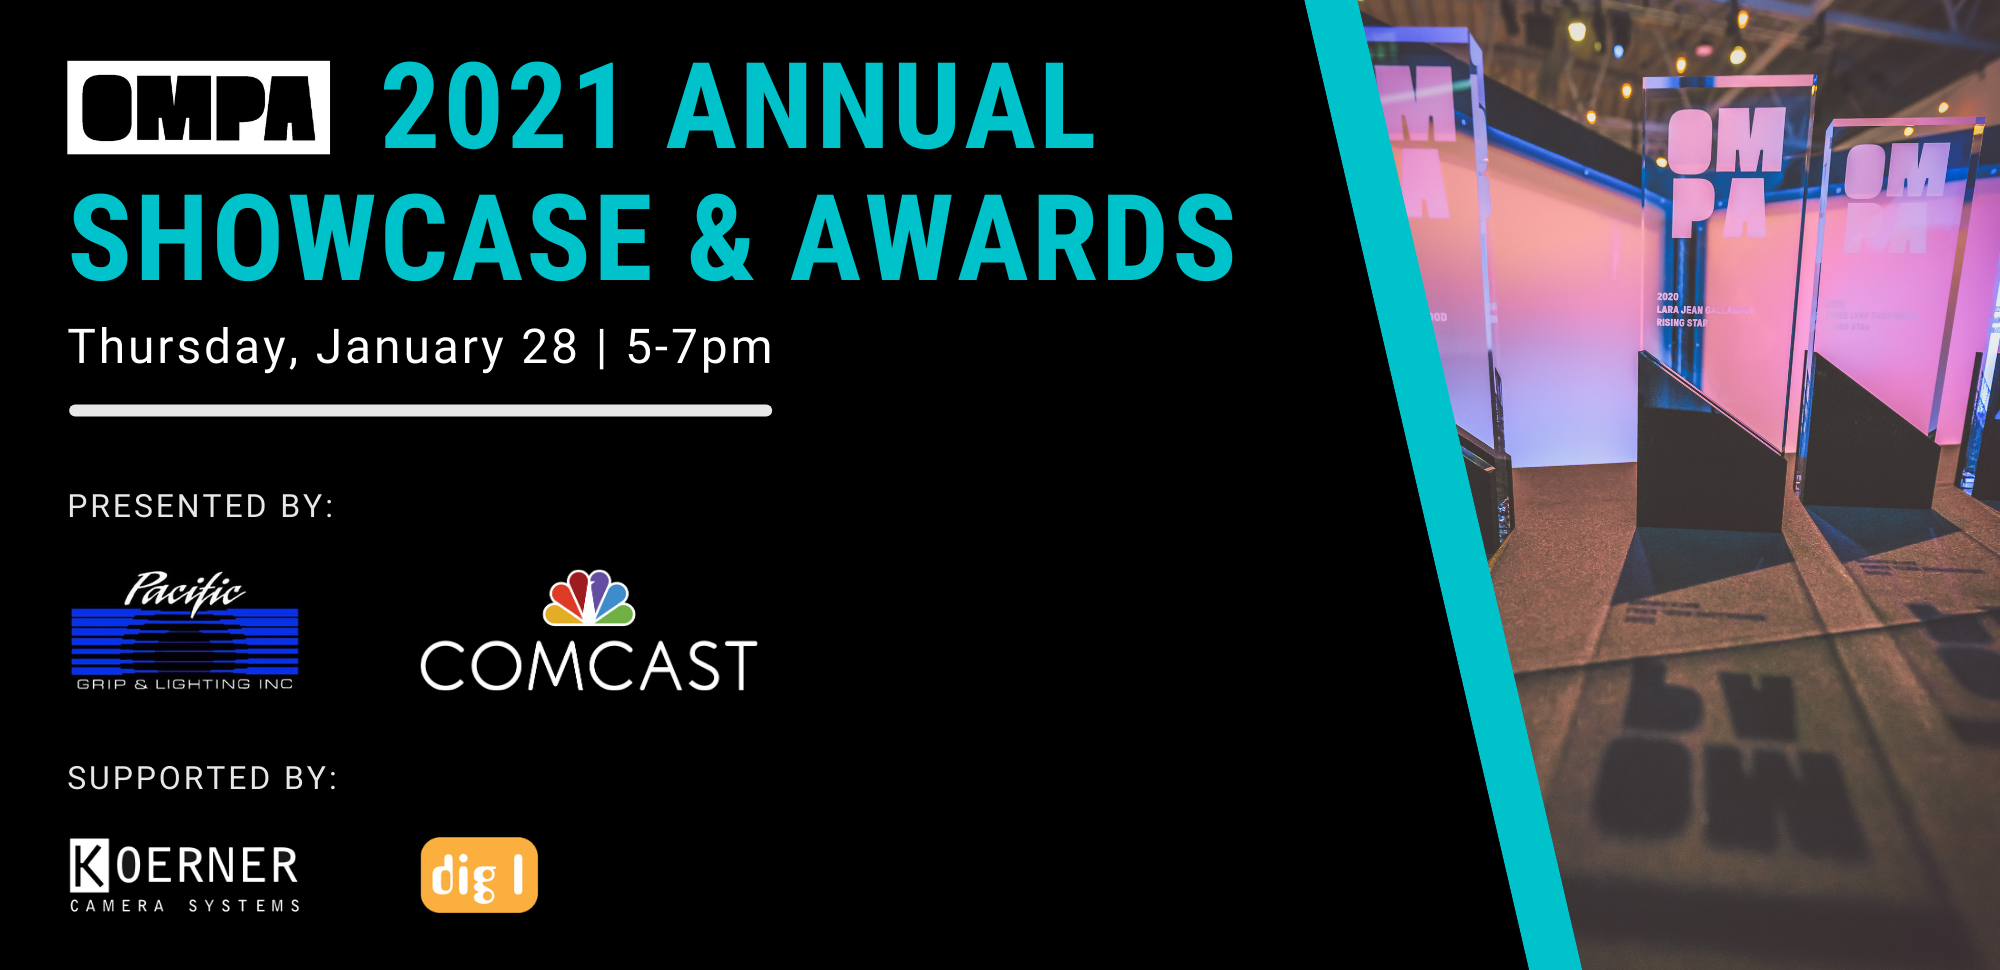 2021 OMPA Annual Showcase & Awards. January 28.